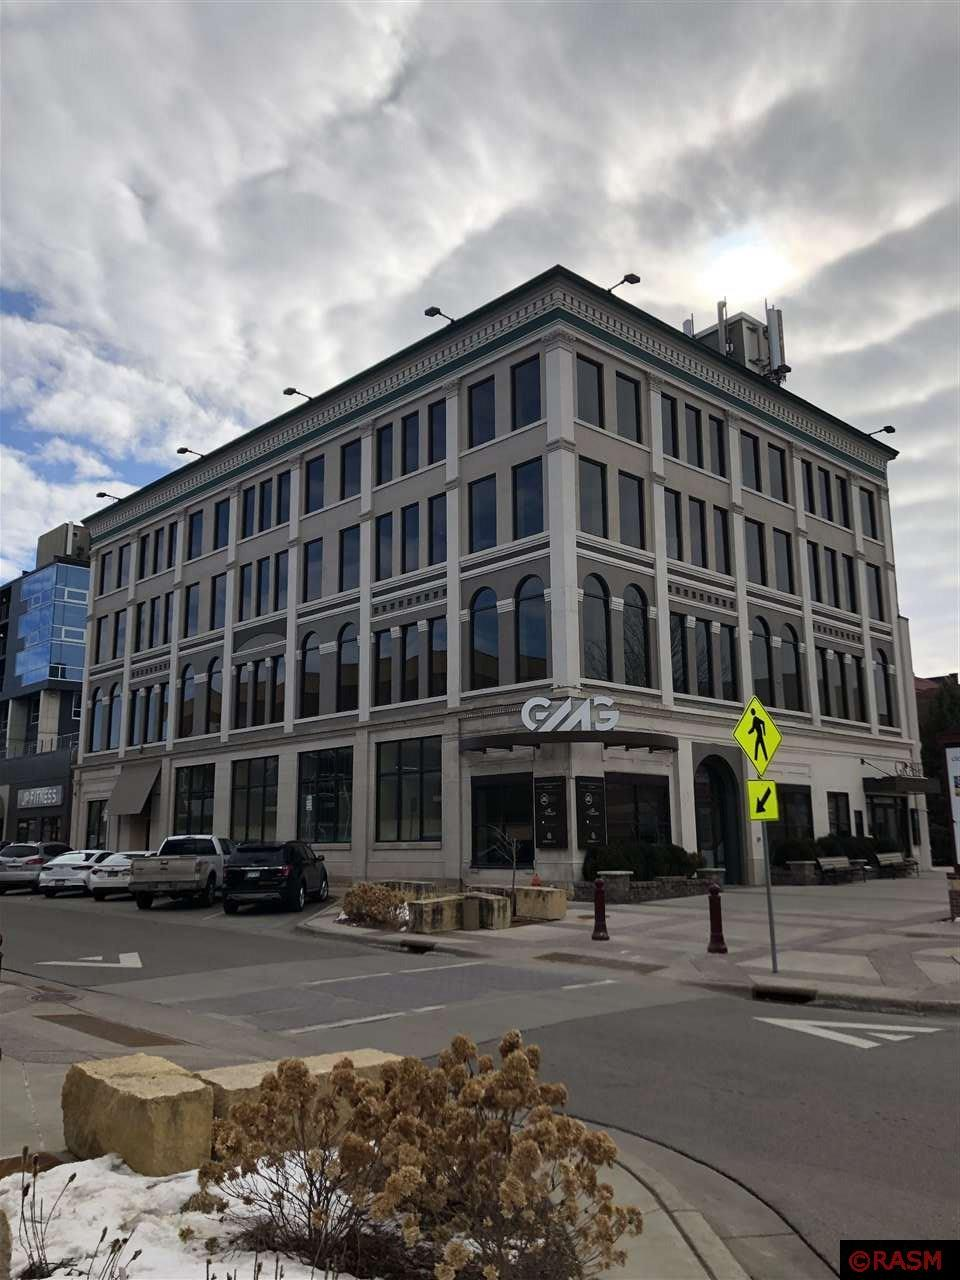 2800 Sq. Ft. of Class A - Office Space Gross rent 3950 - $20.61 Sq. Ft. partially Furnished - 2 stalls designated parking Plus 30 non designated parking stalls Convenient downtown location